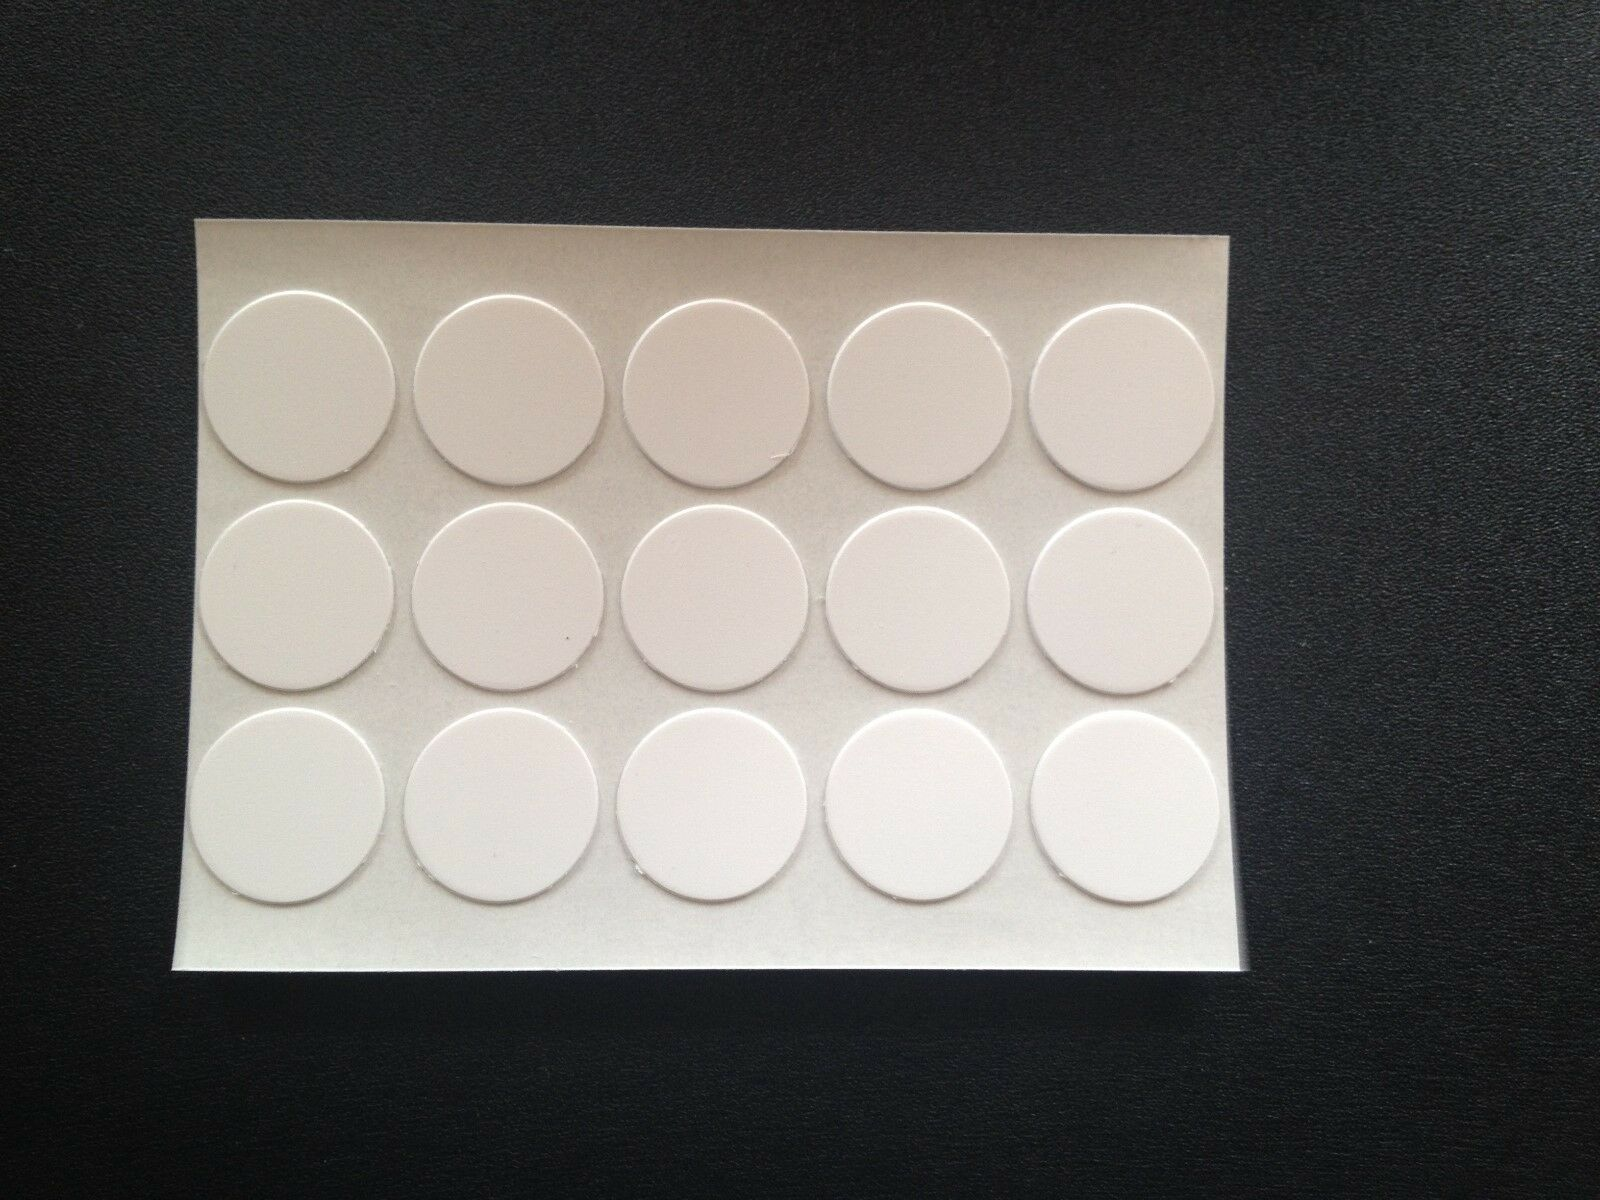 Self Adhesive Stick On Screw Hole Cap Covers 20mm White